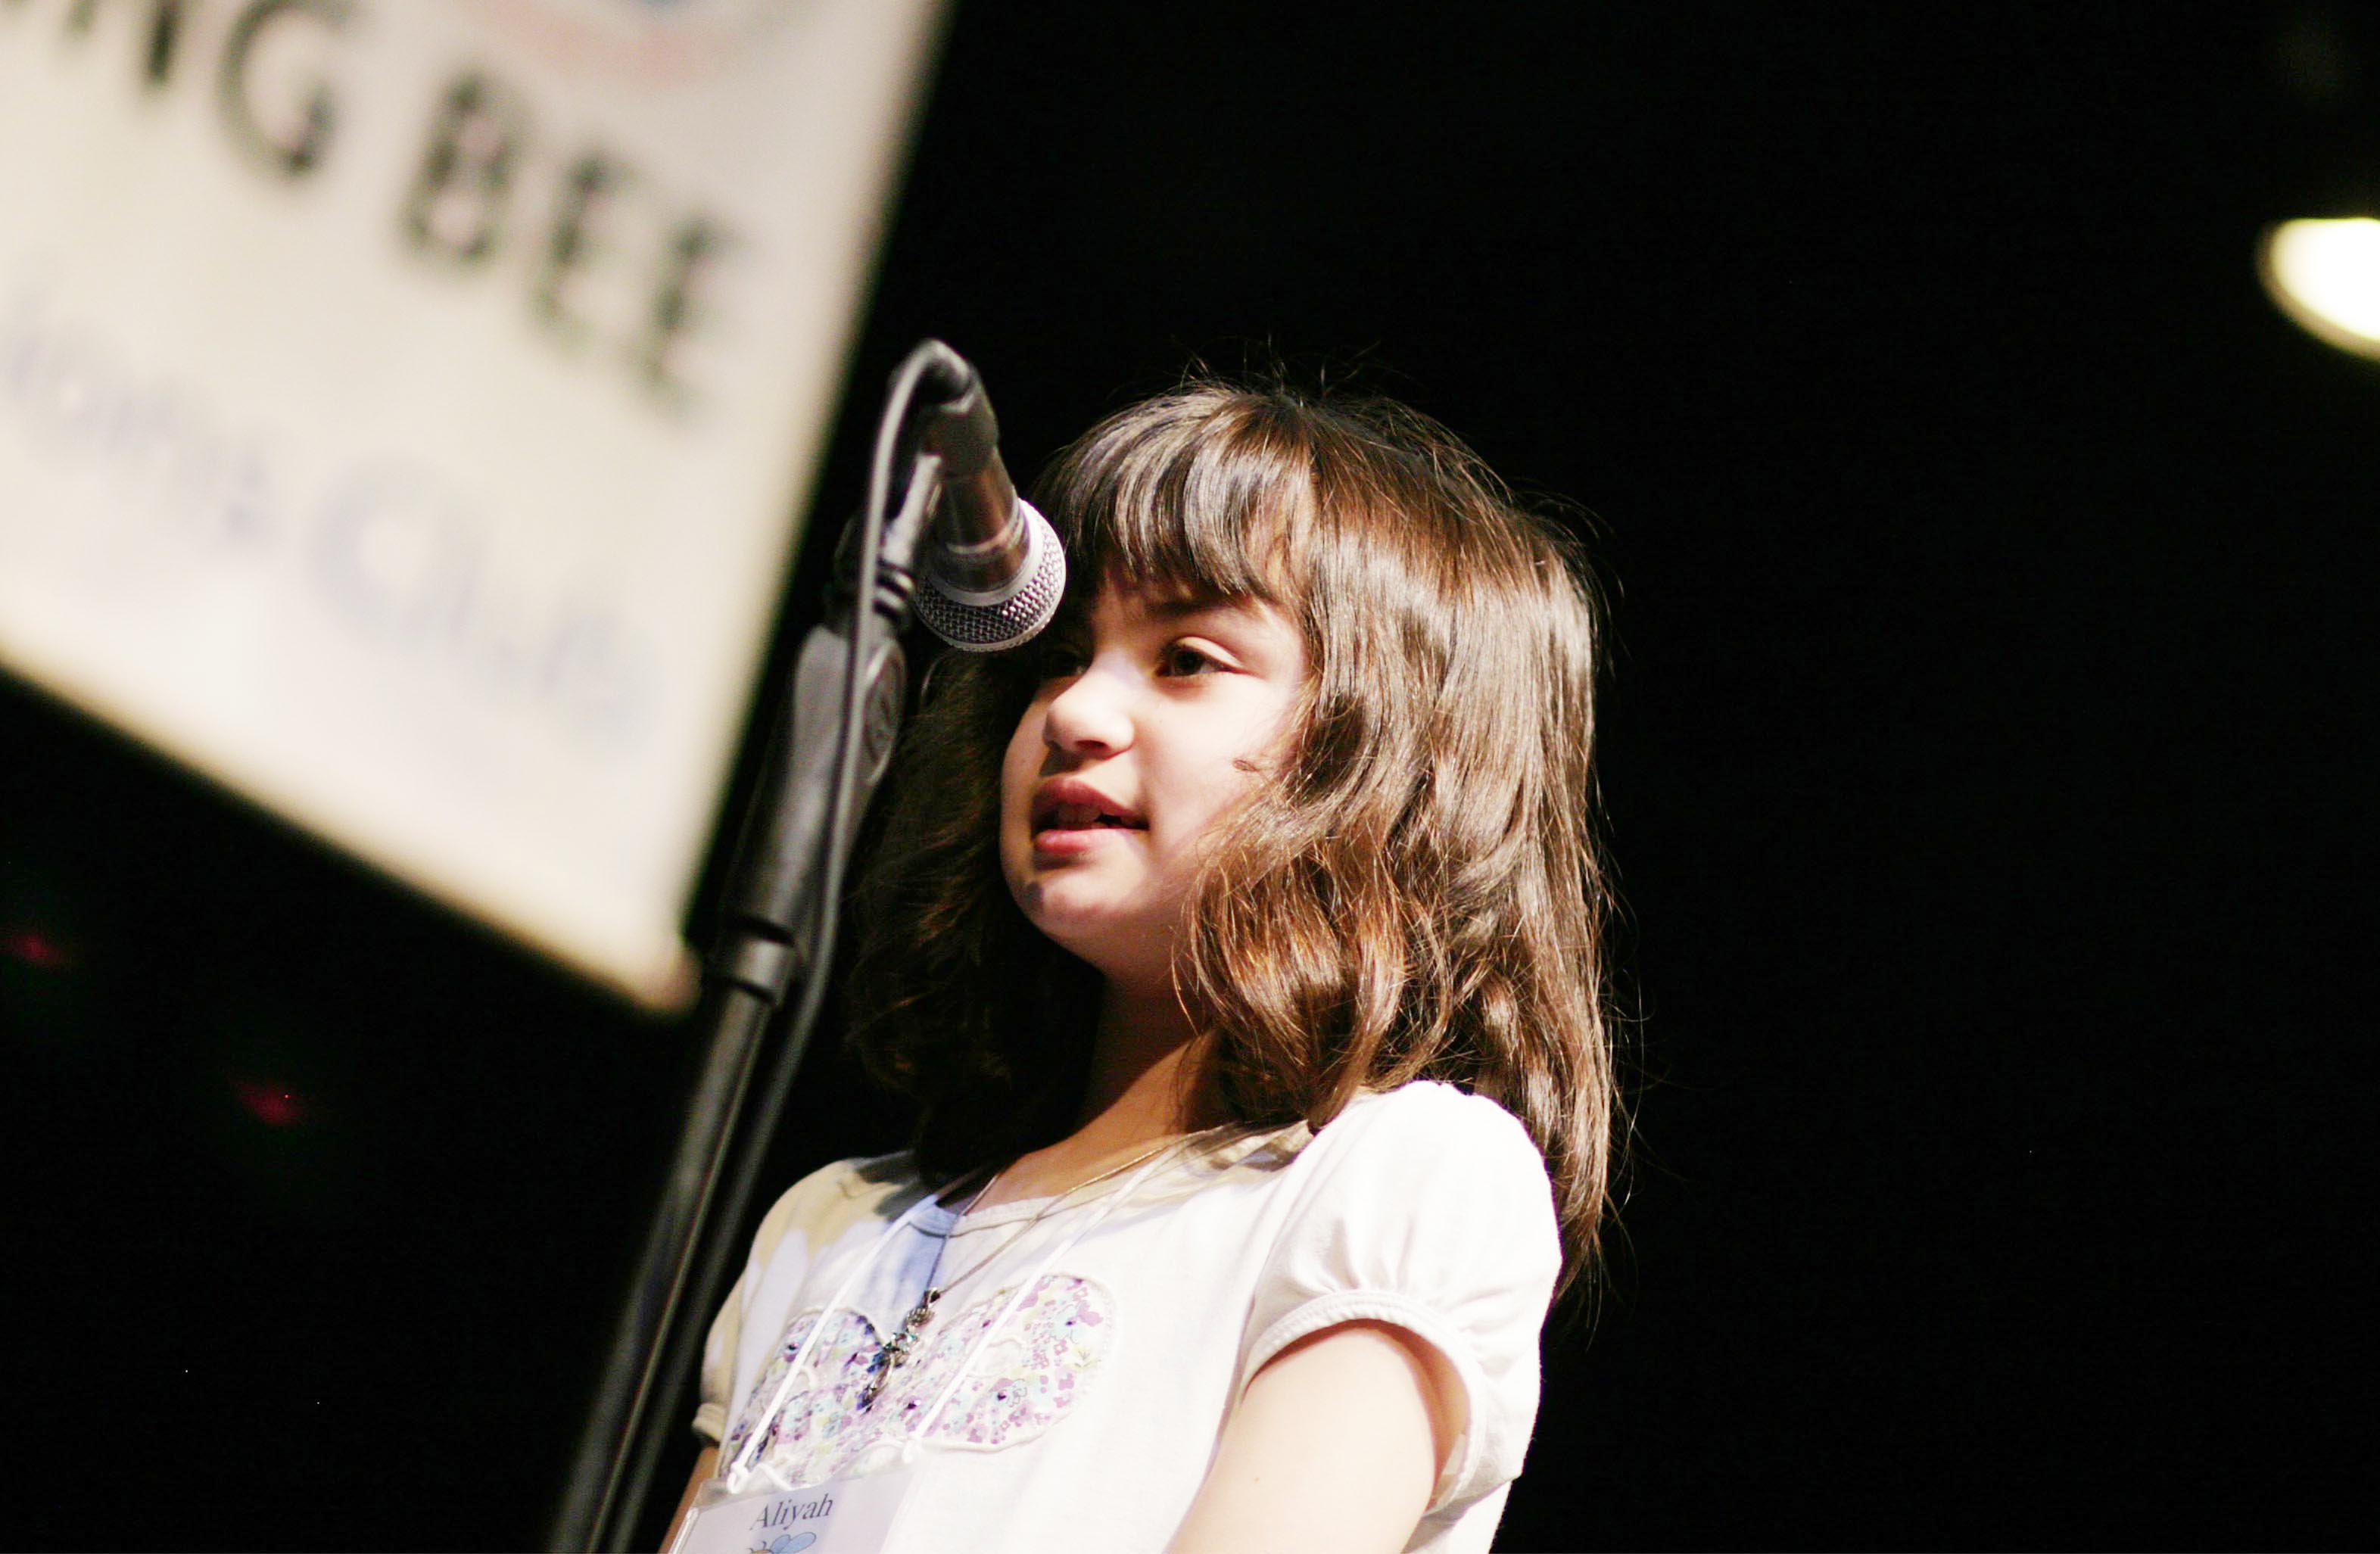 Prescott home-school student wins again at county spelling bee